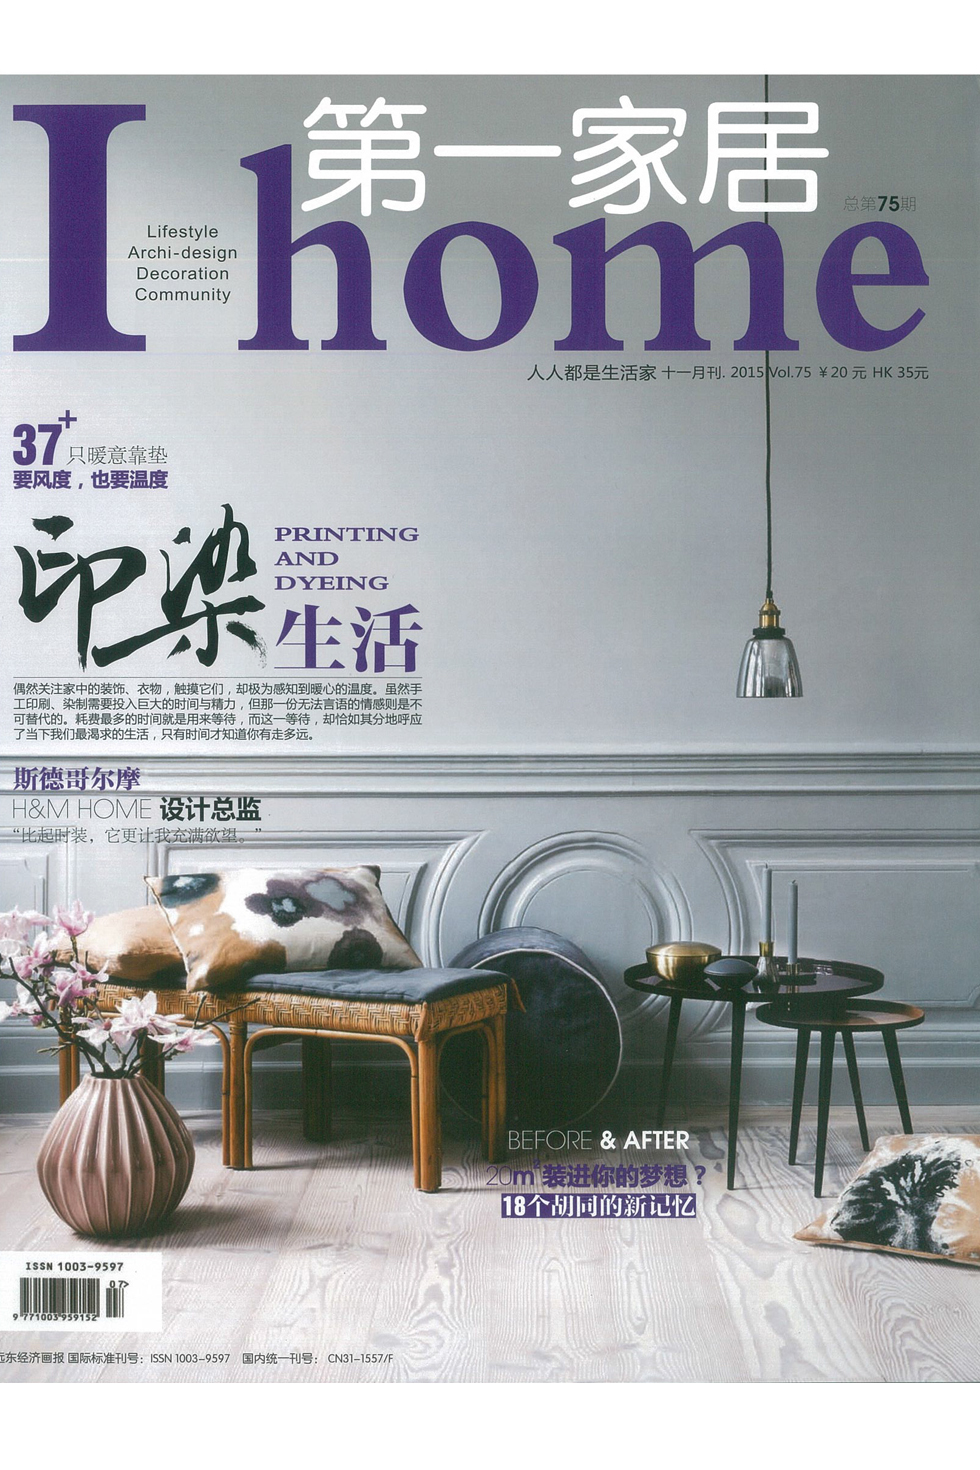 IHome, ALL SH + Little Catch, Nov 2015